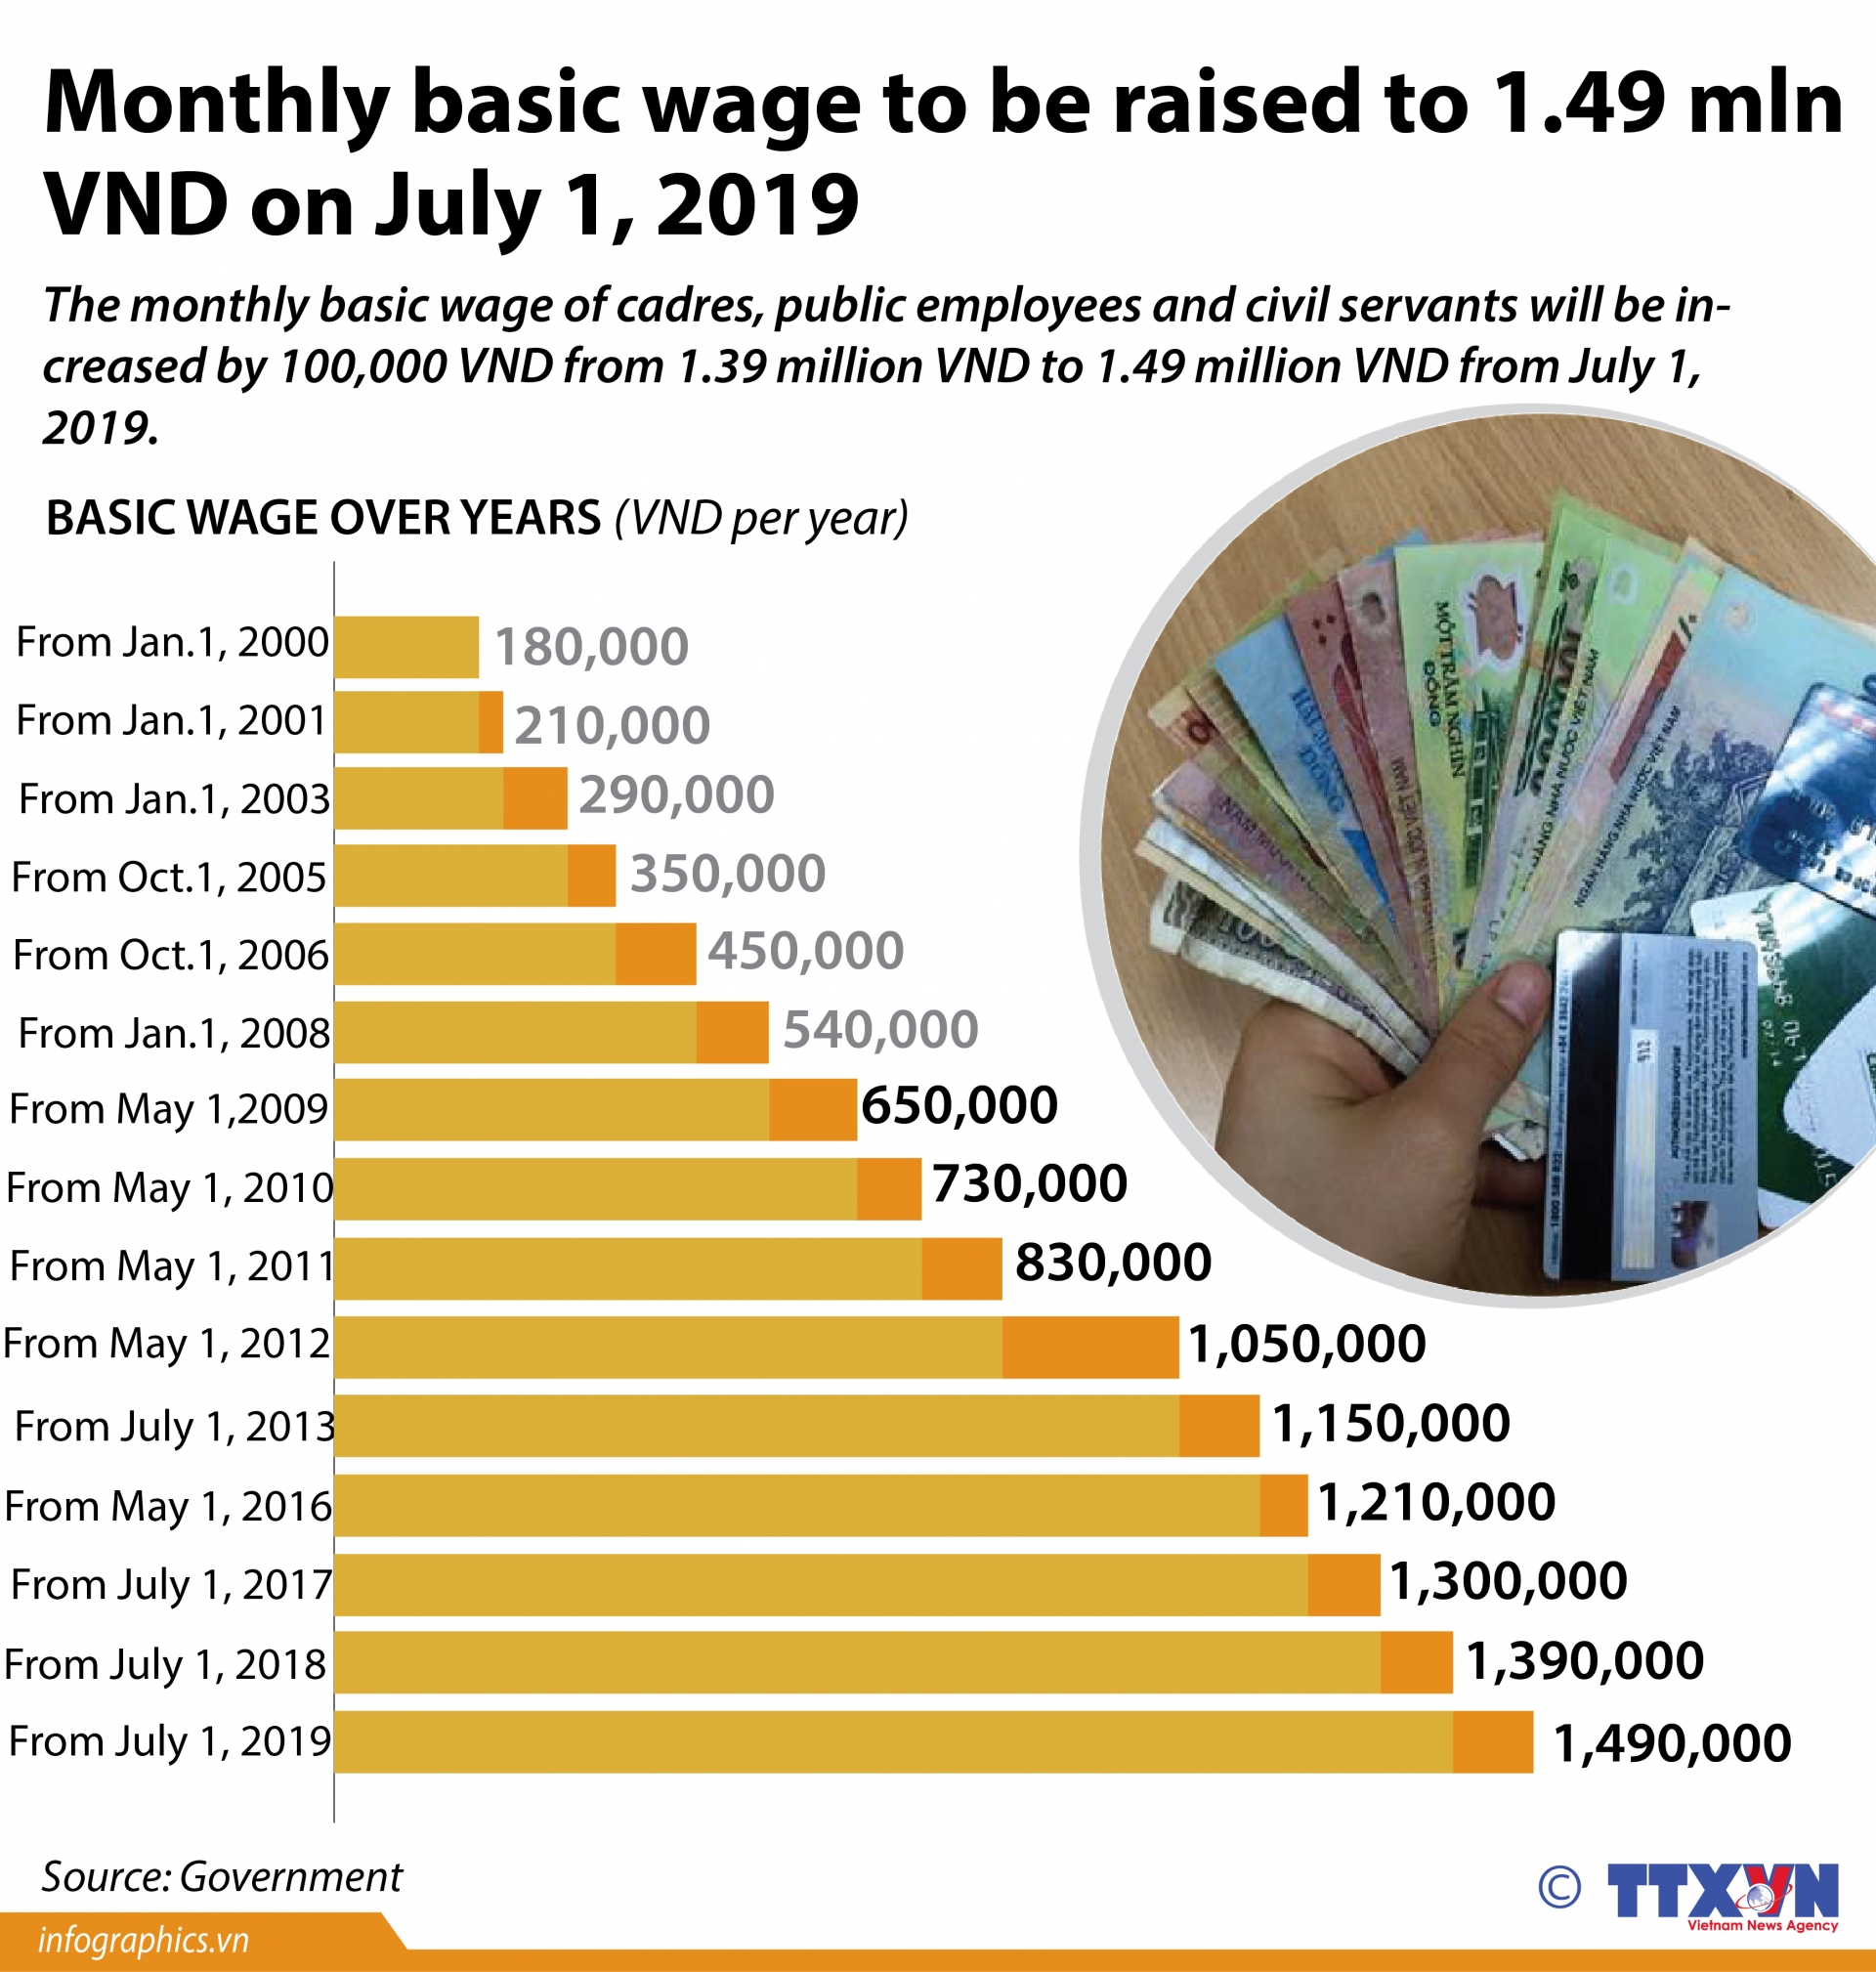 monthly basic wage to be raised to 149 million vnd on july 1 2019